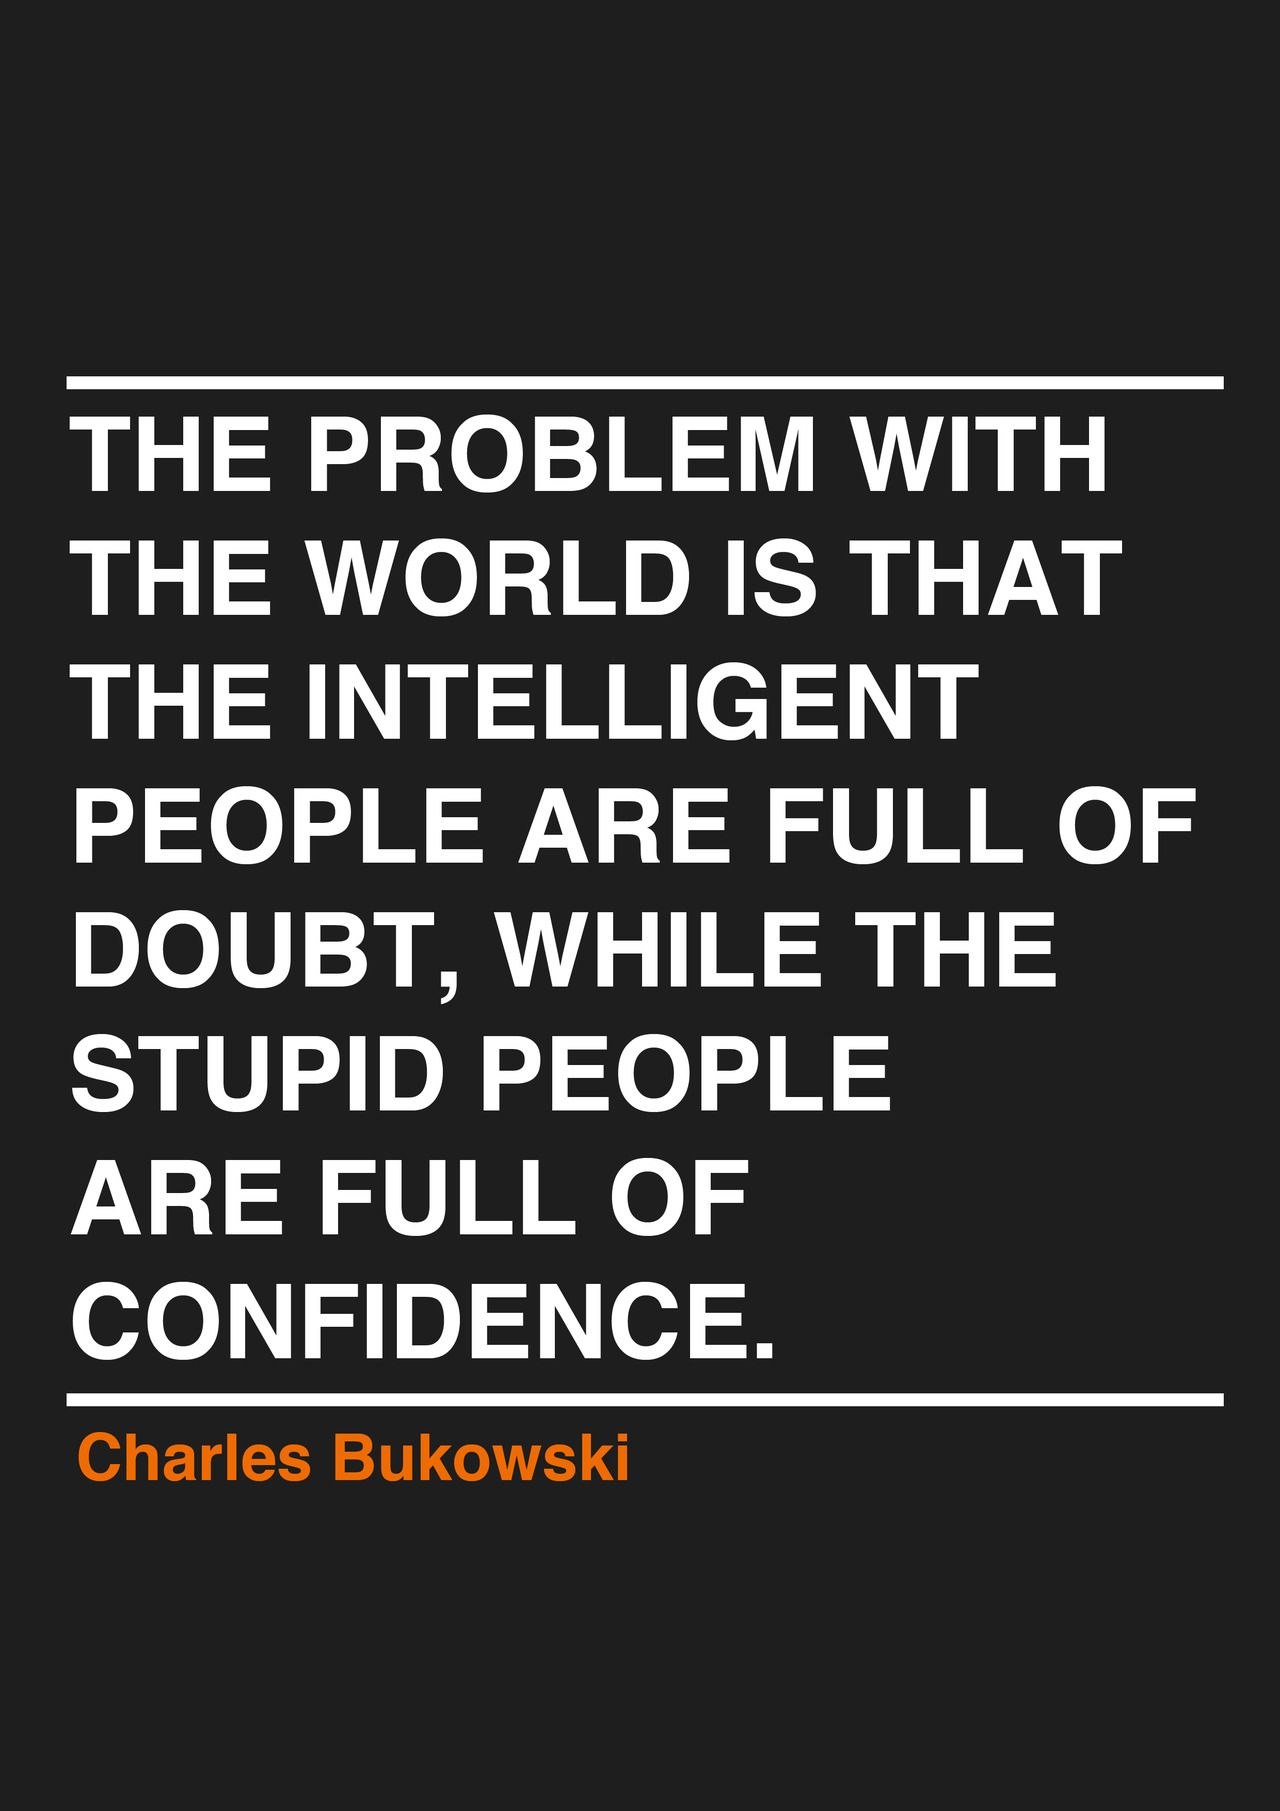 charles bukowski citation